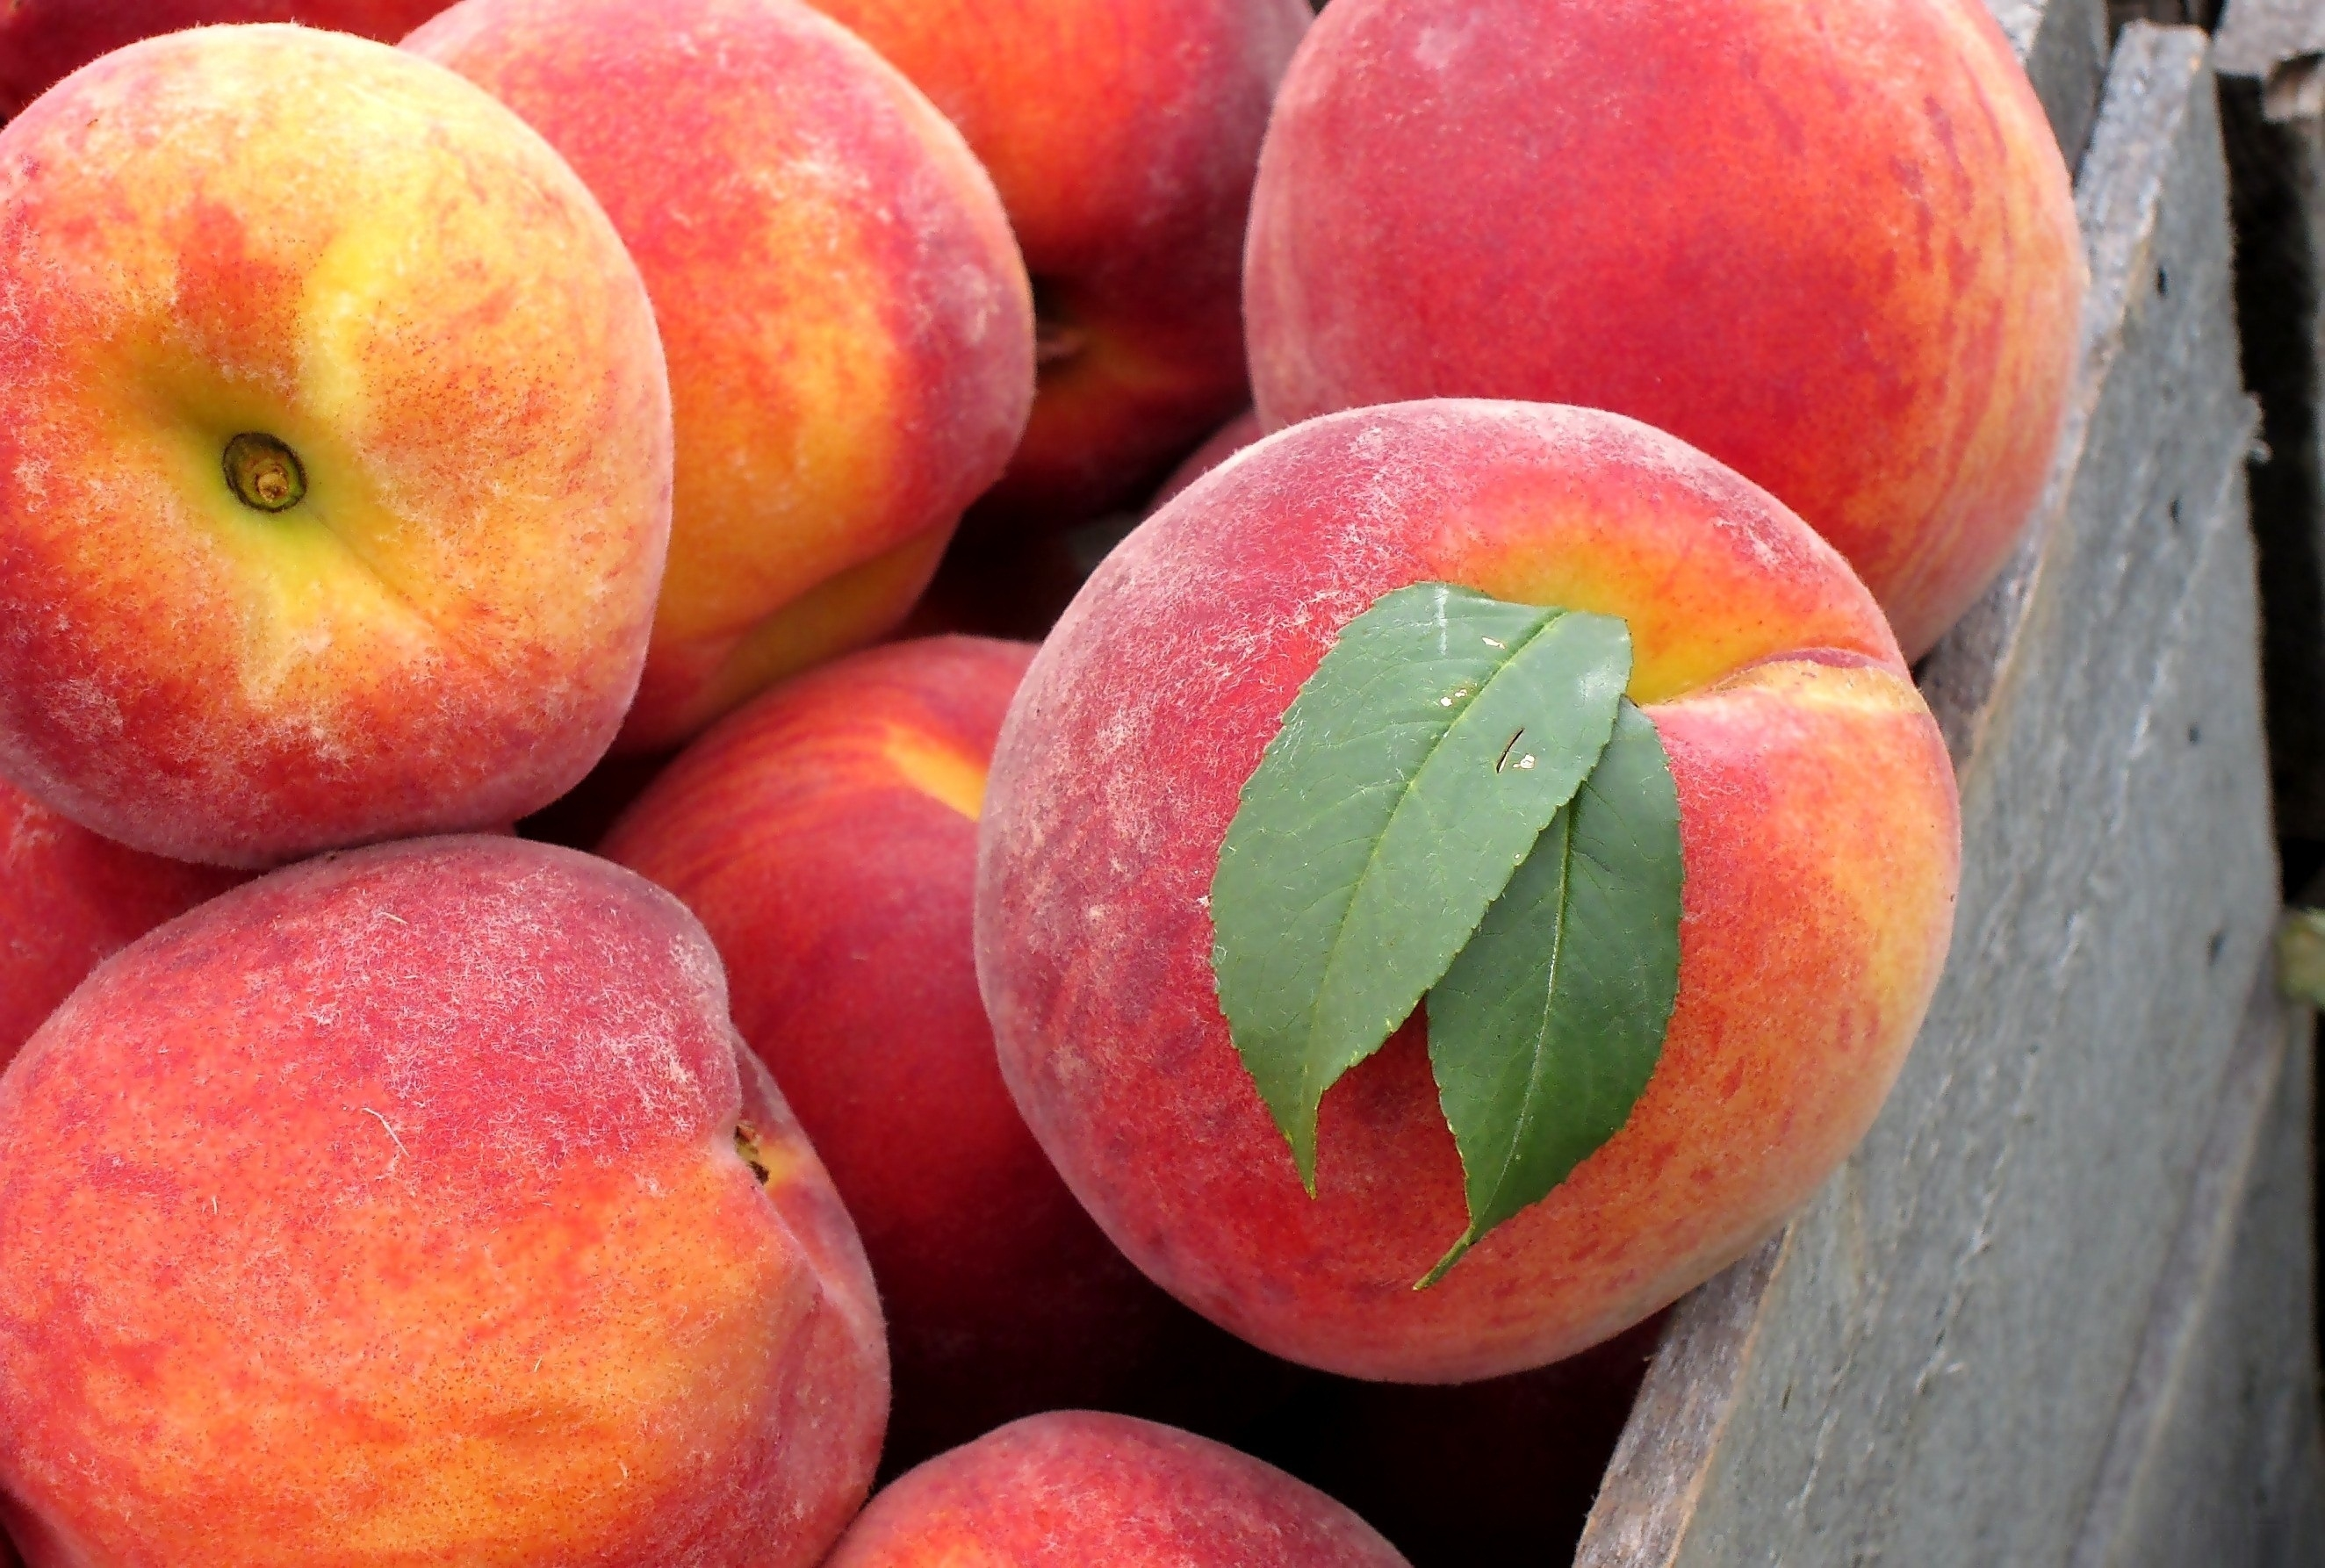 127119 download wallpaper Food, Peaches, Box, Leaves, Fresh, Fruits screensavers and pictures for free